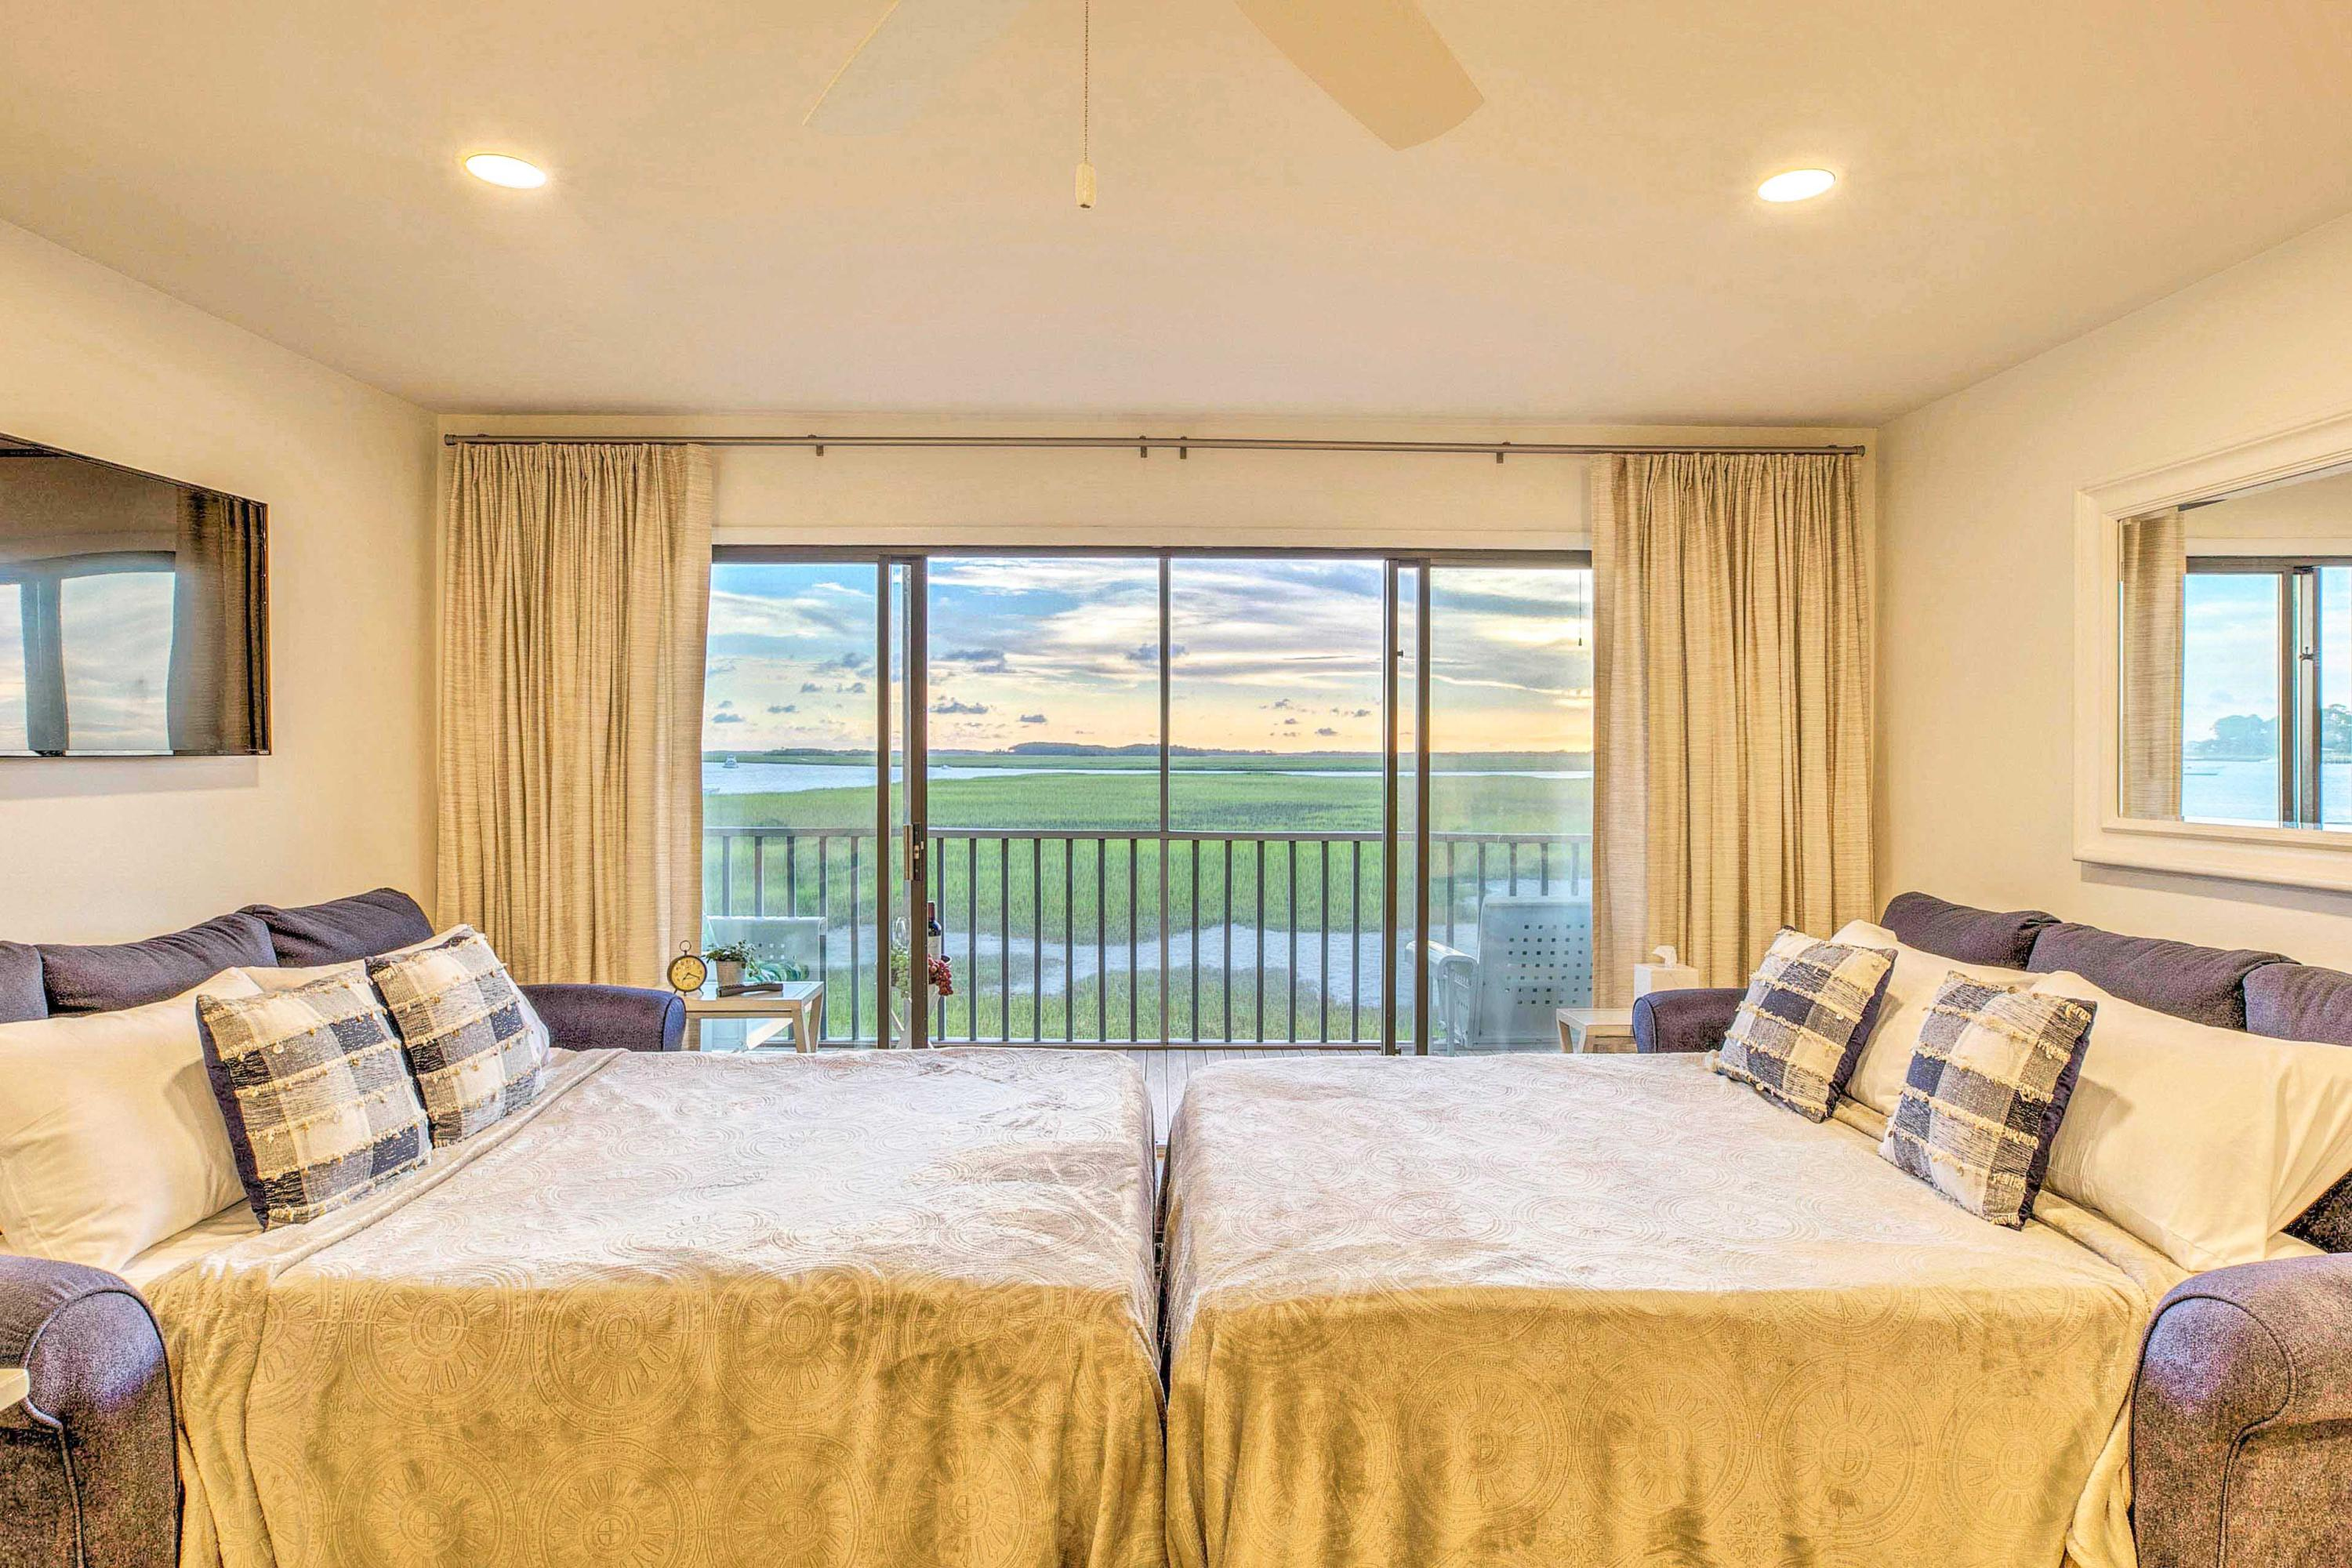 Mariners Cay Homes For Sale - 93 Mariners Cay, Folly Beach, SC - 26